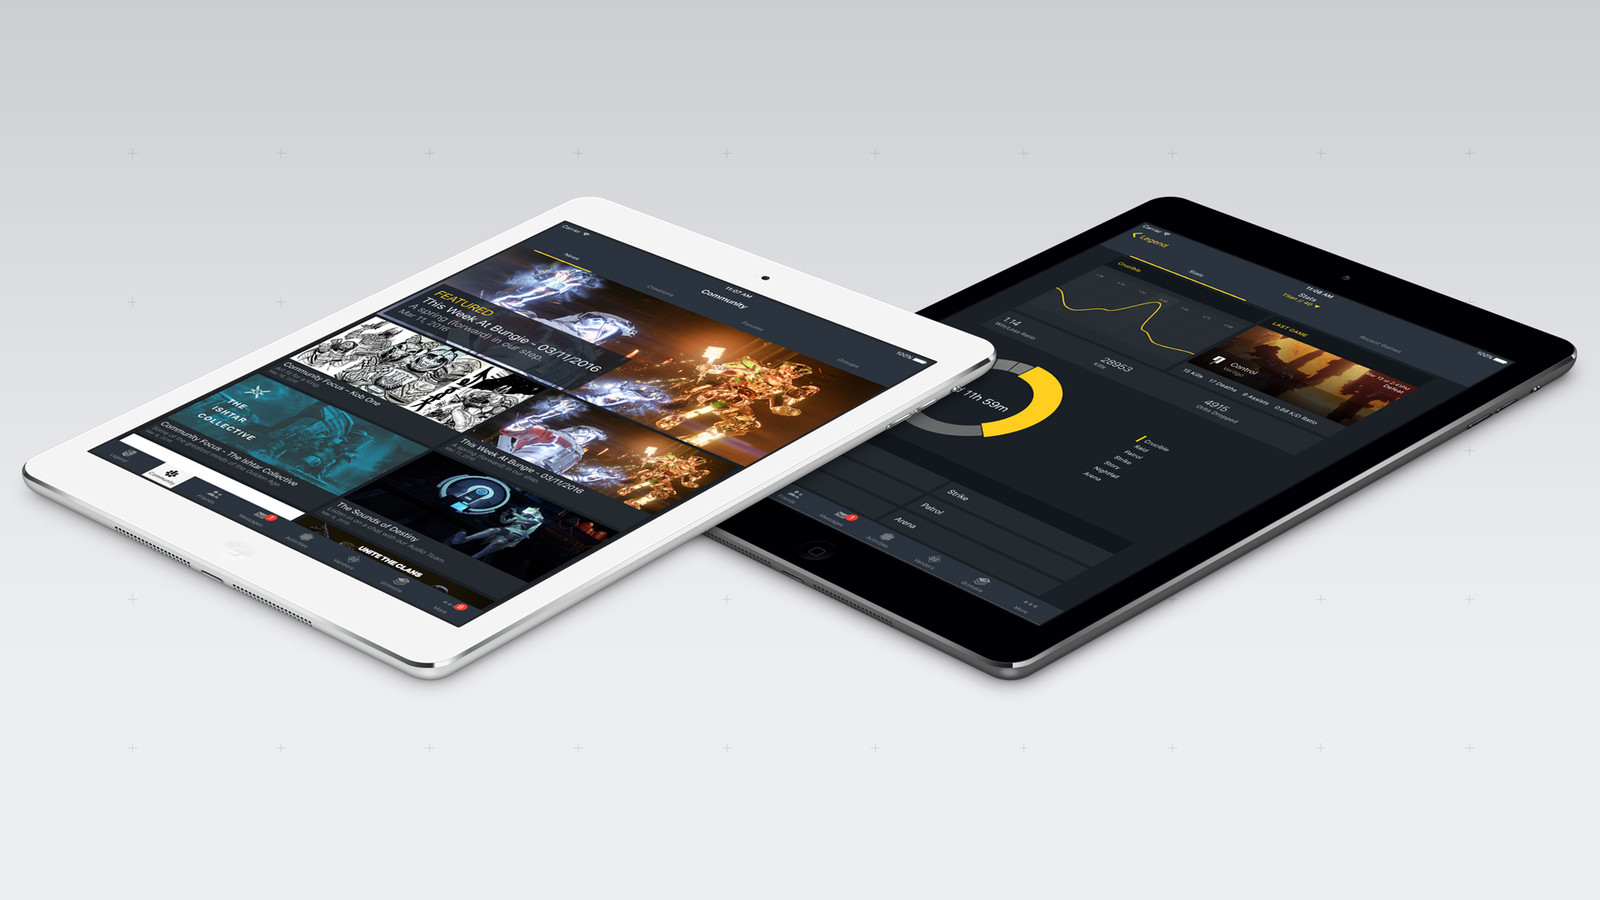 Destiny Companion app revamp brings iPad support and more